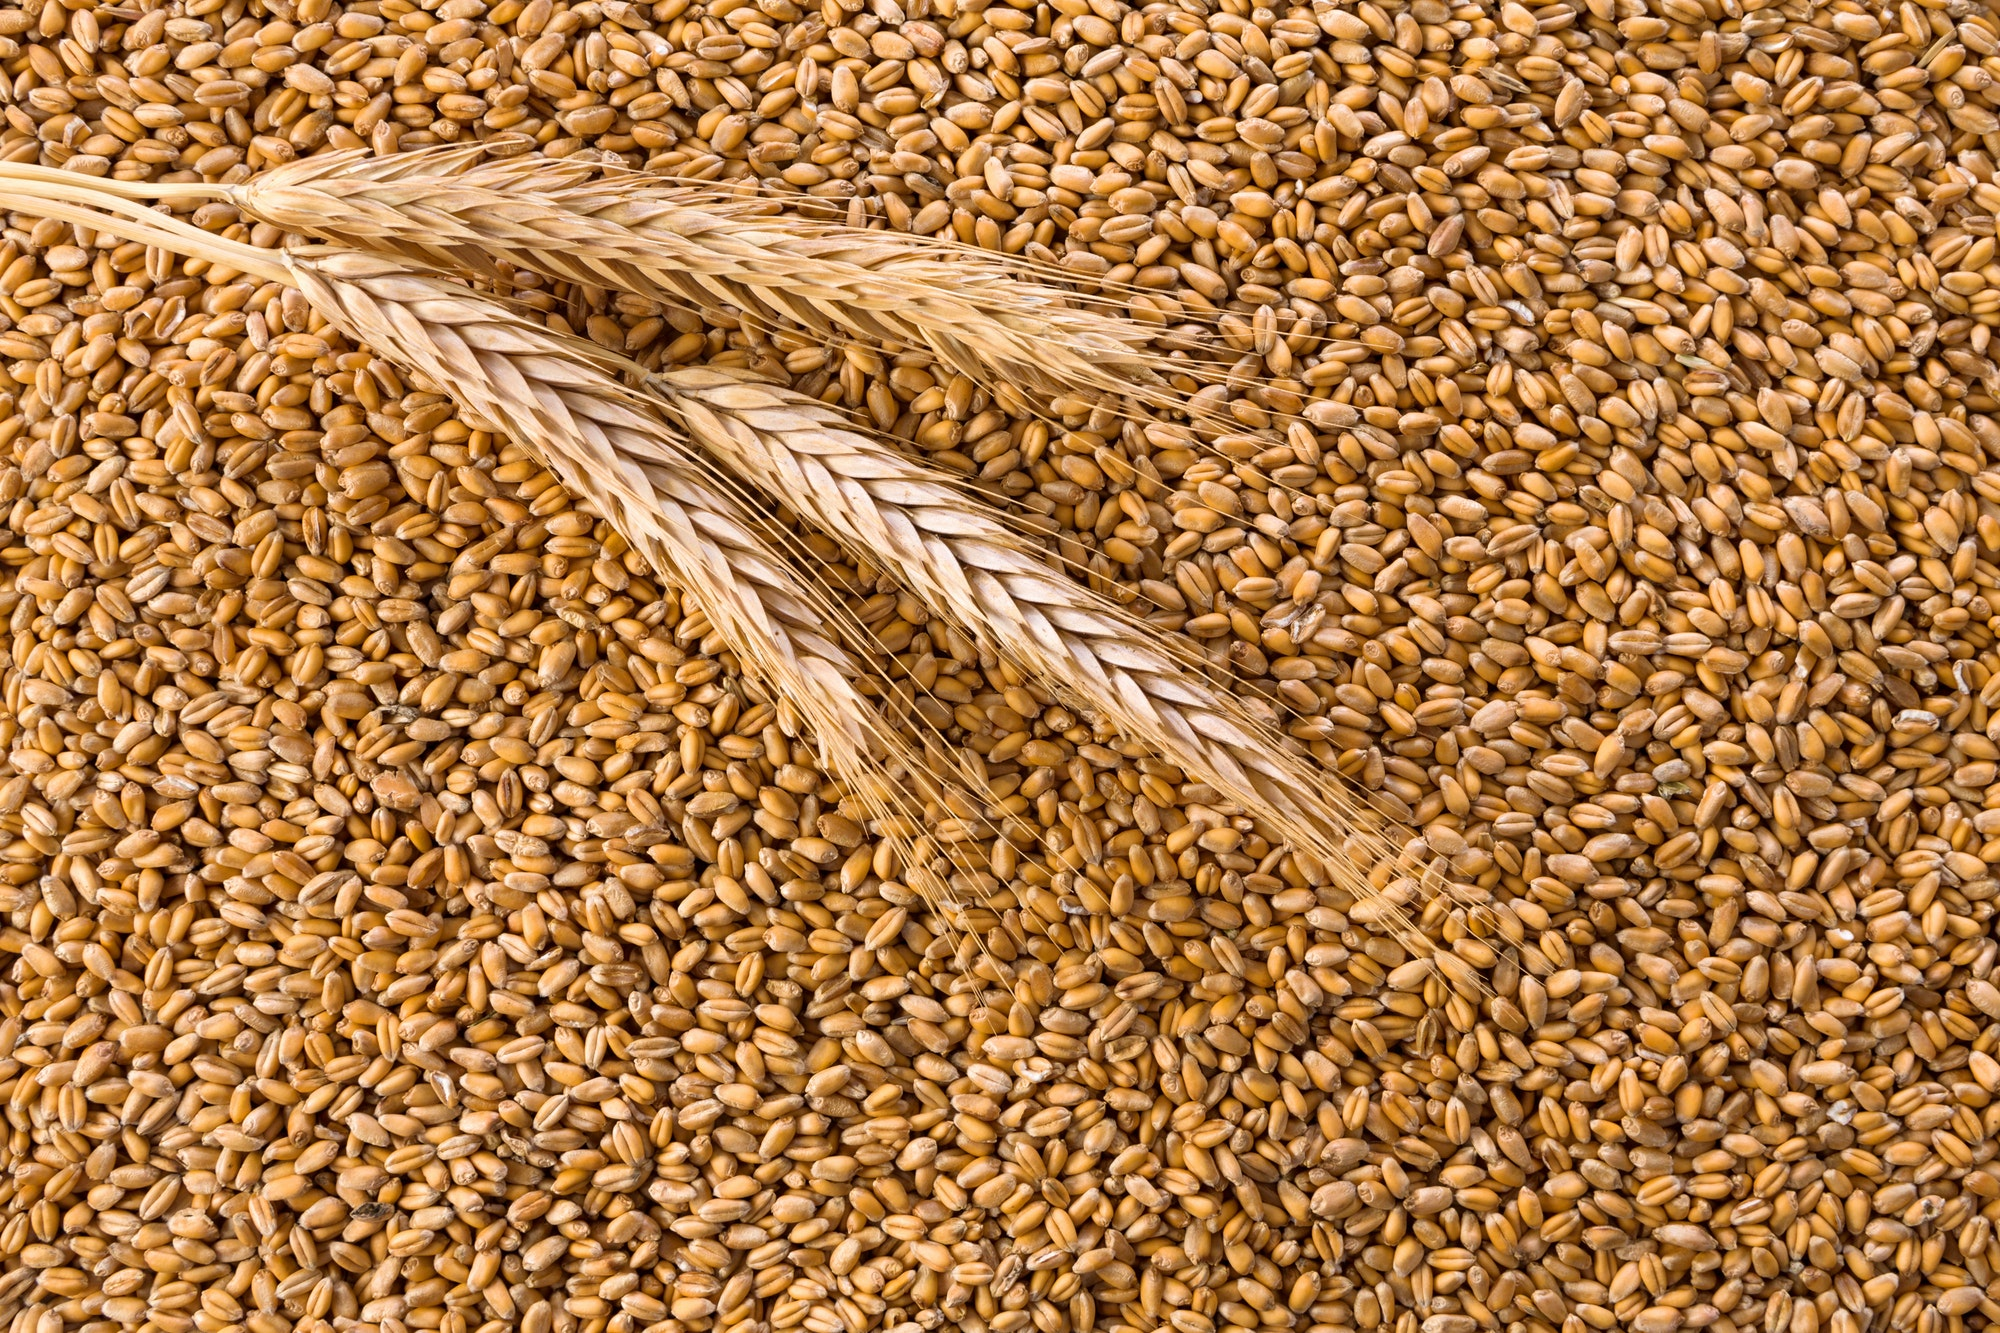 Processed organic wheat grains background